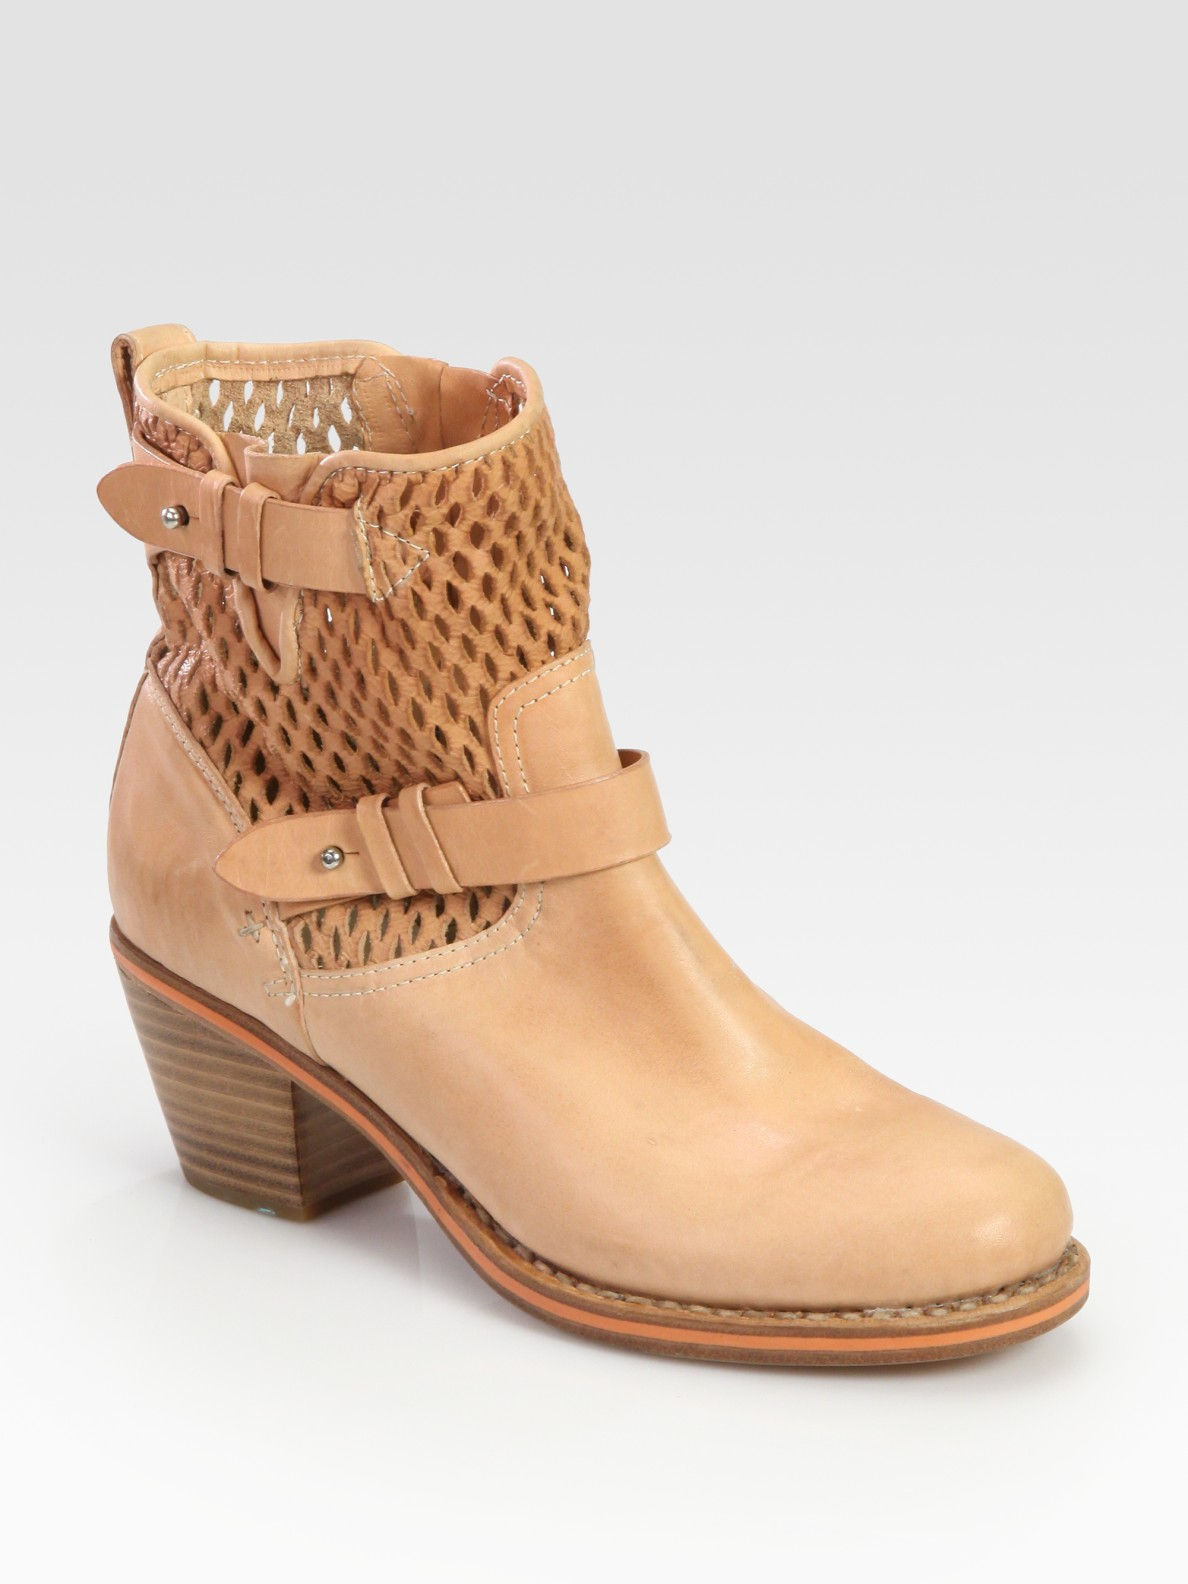 Rag & Bone Leather Perforated Ankle Boots